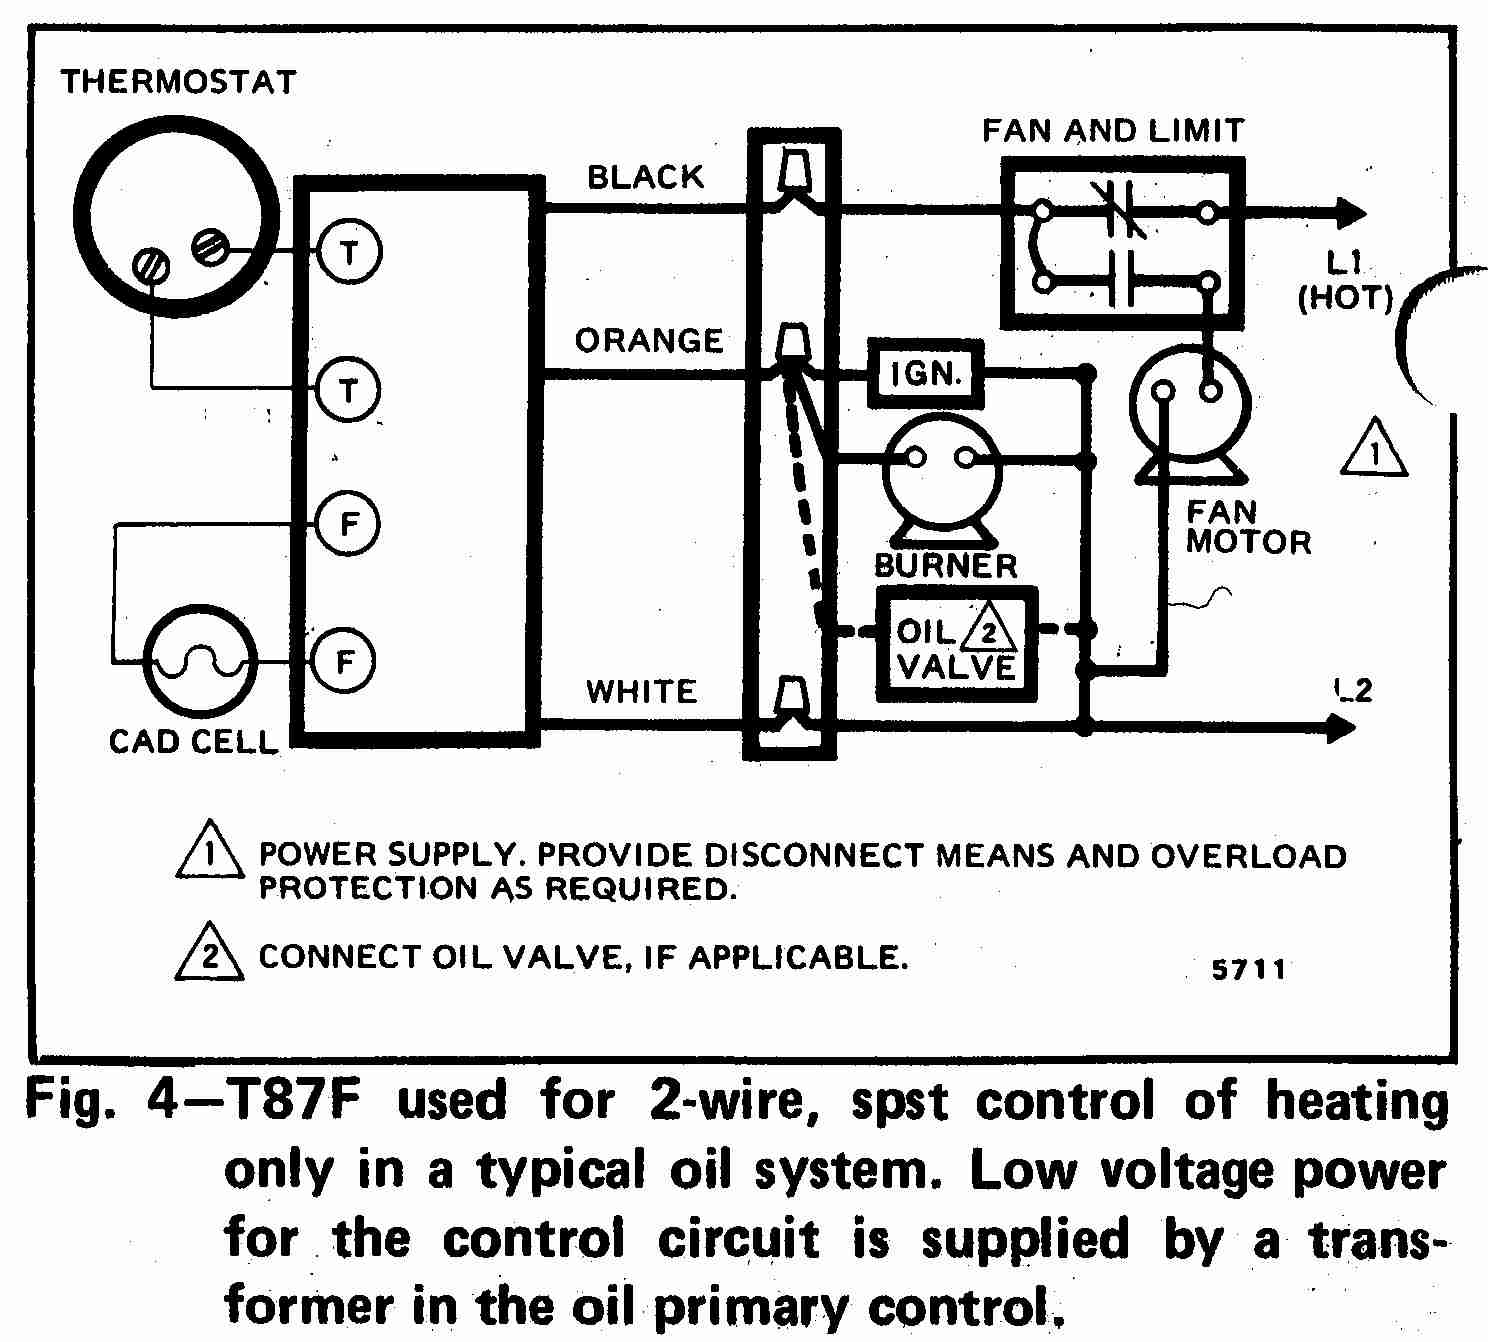 Honeywell Aquastat Wiring Diagram